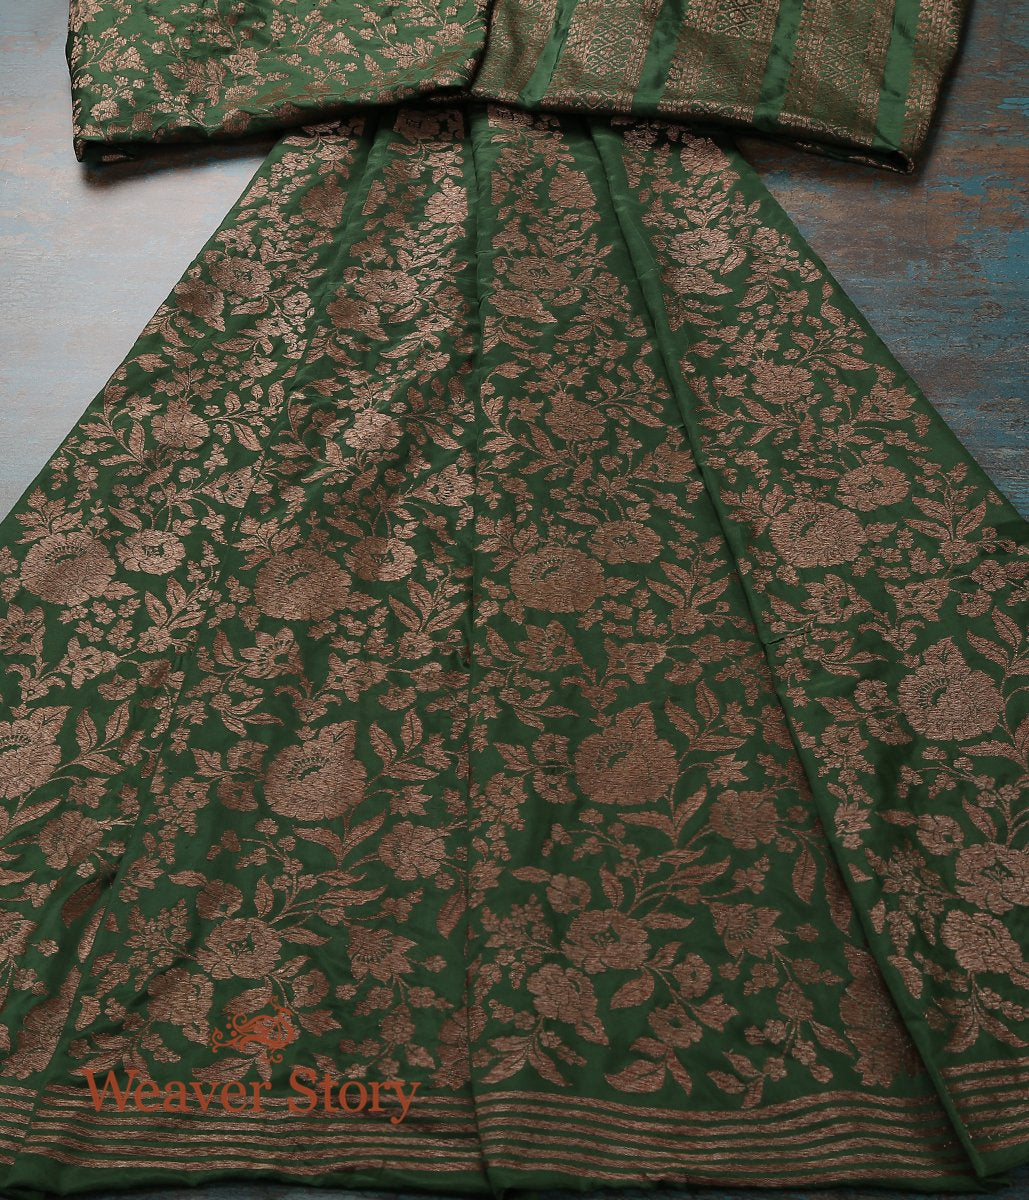 Handwoven Green Banarasi Lehenga with Antique Zari